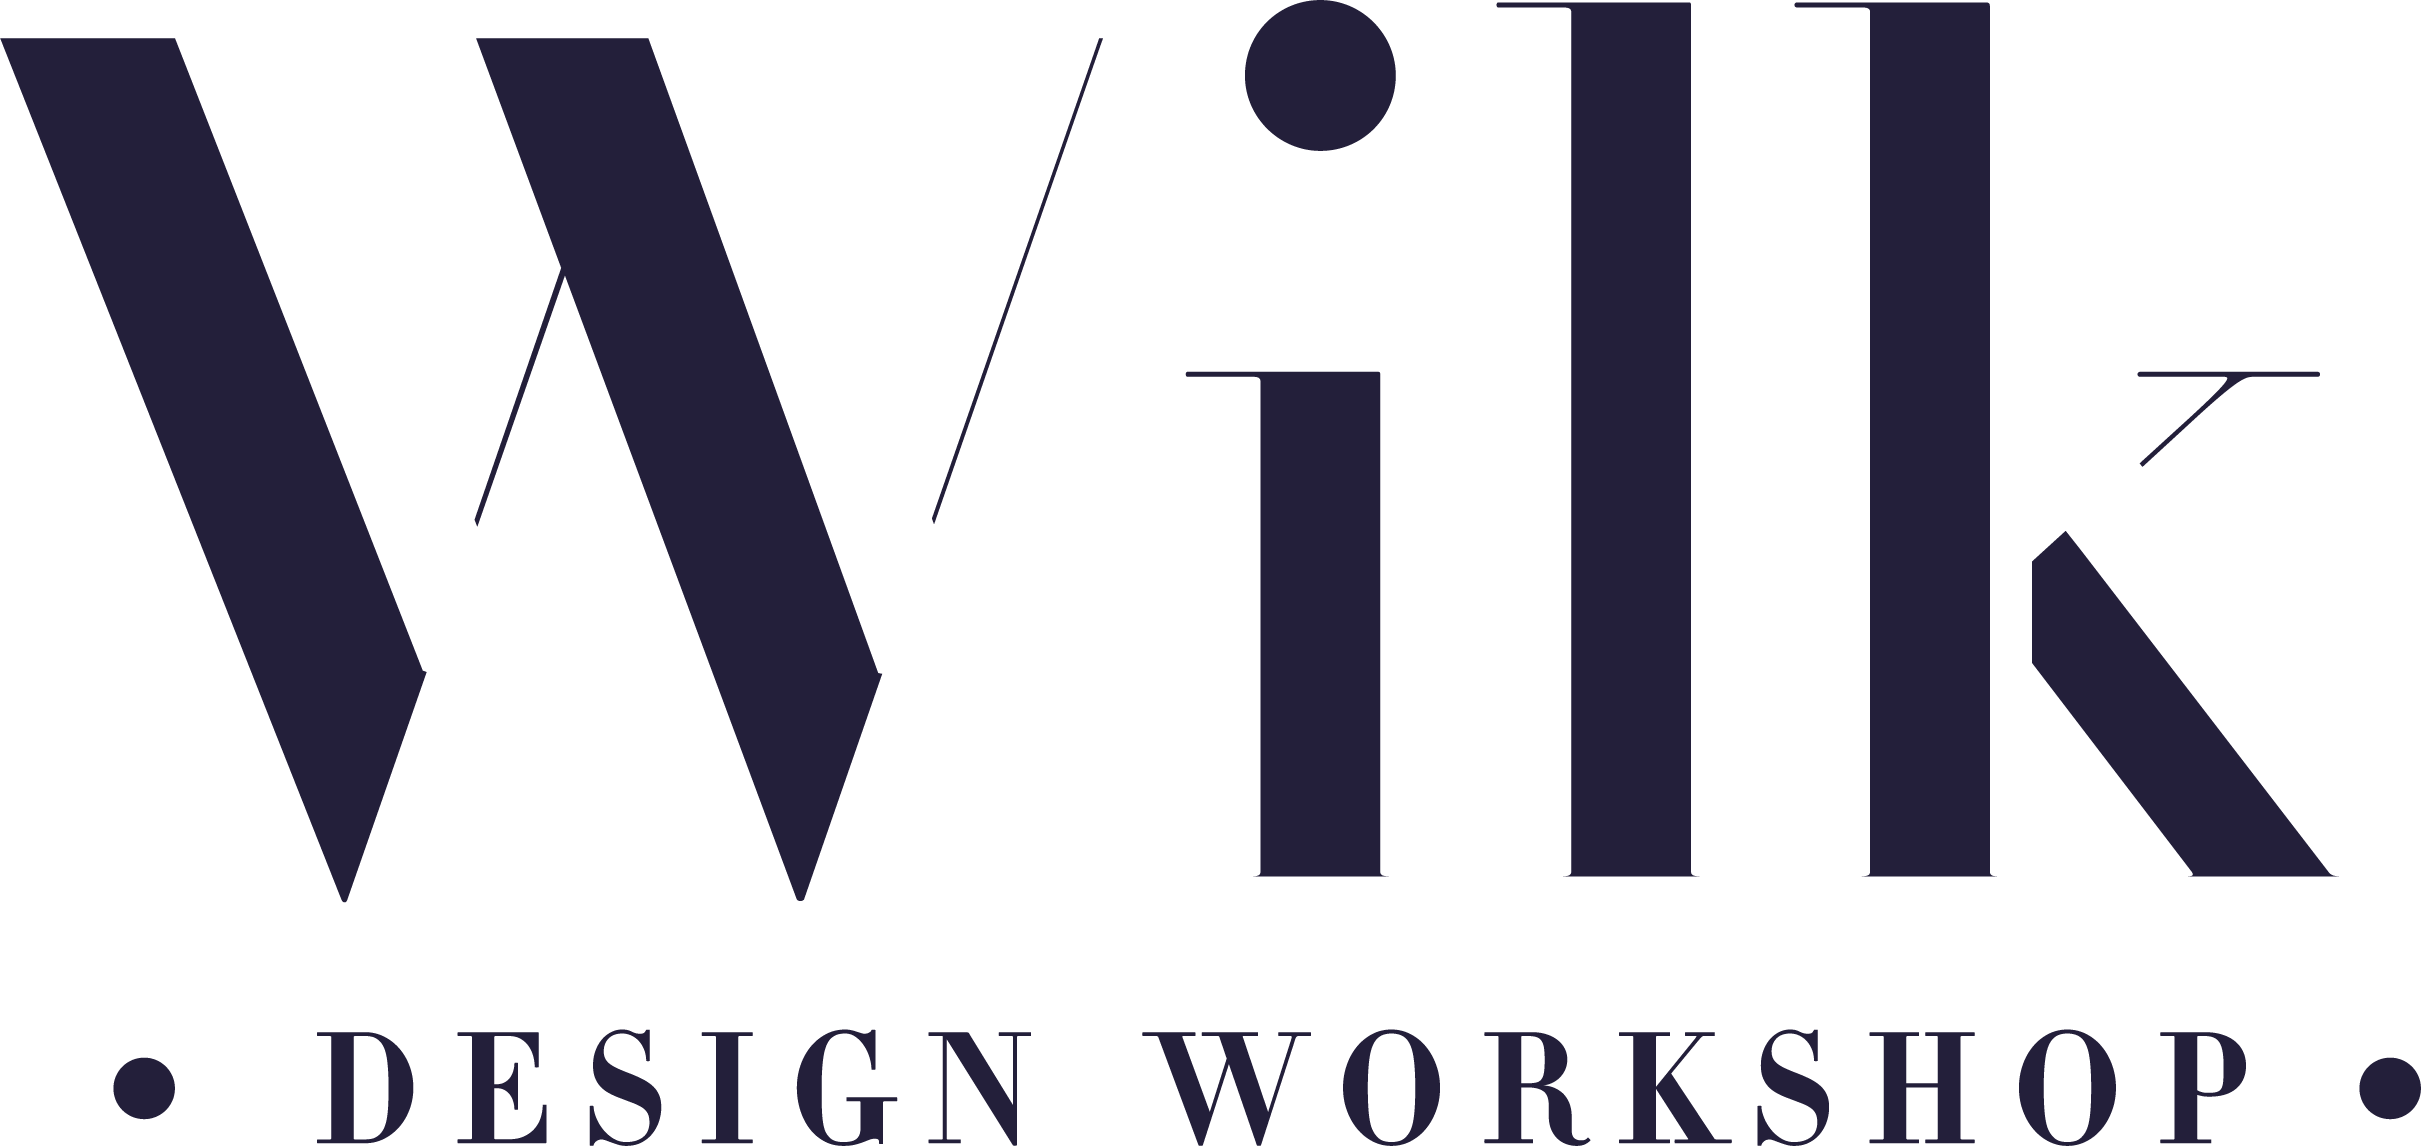 Wilk Design Workshop Logo